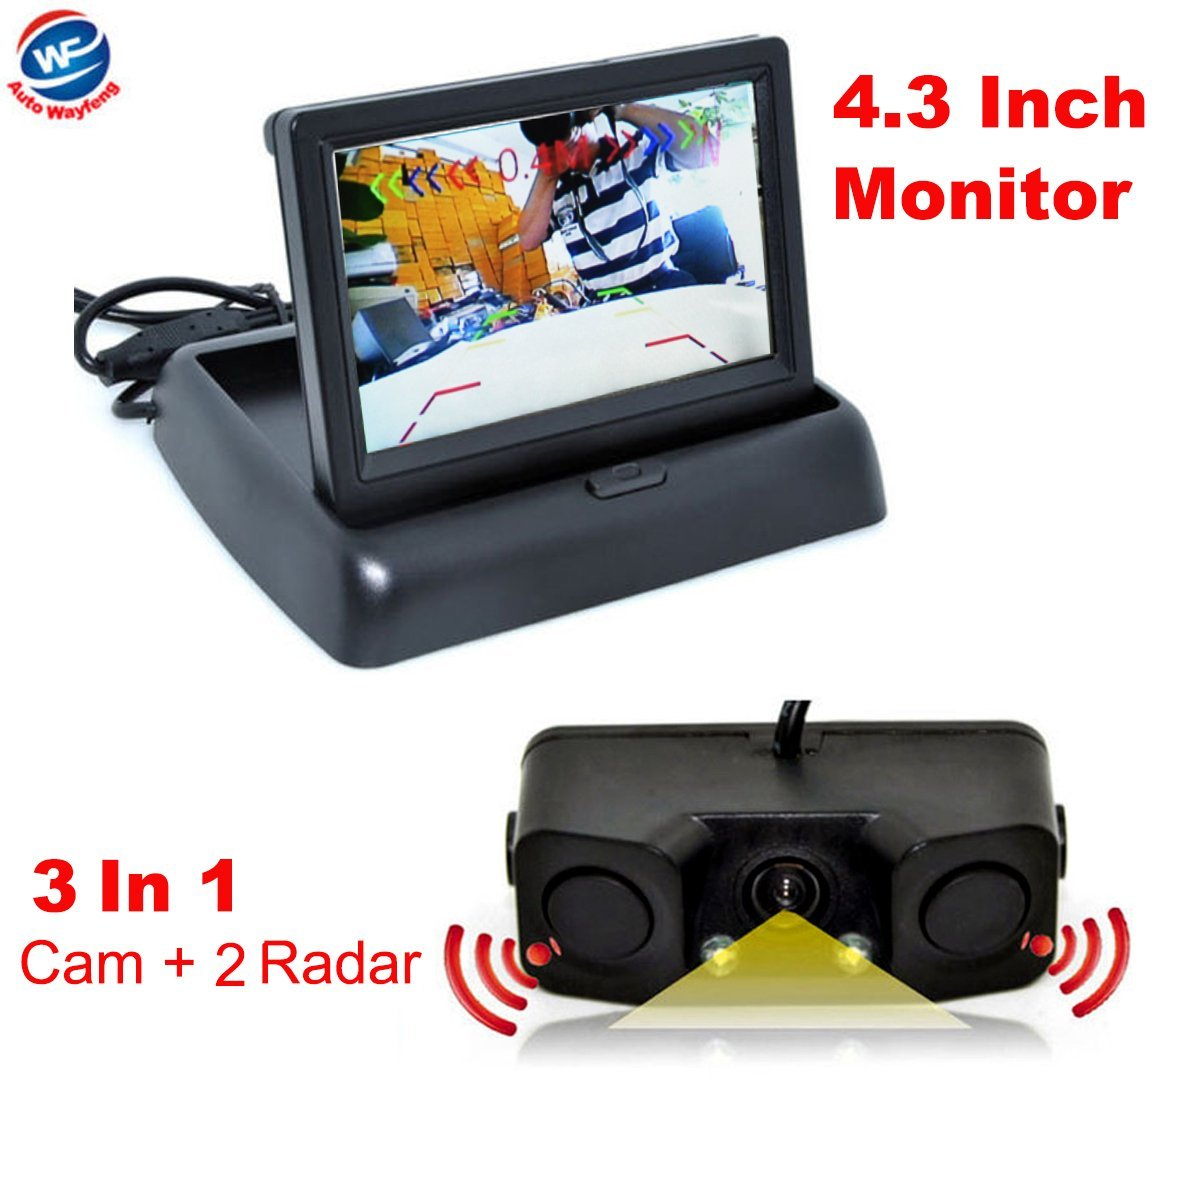 Auto Wayfeng WF 3 in 1 Video Parking Assist Backup Radar Sensor With Rear View Camera Camera + 4.3 inch LCD Mirror Of Video Monitor Car Parking